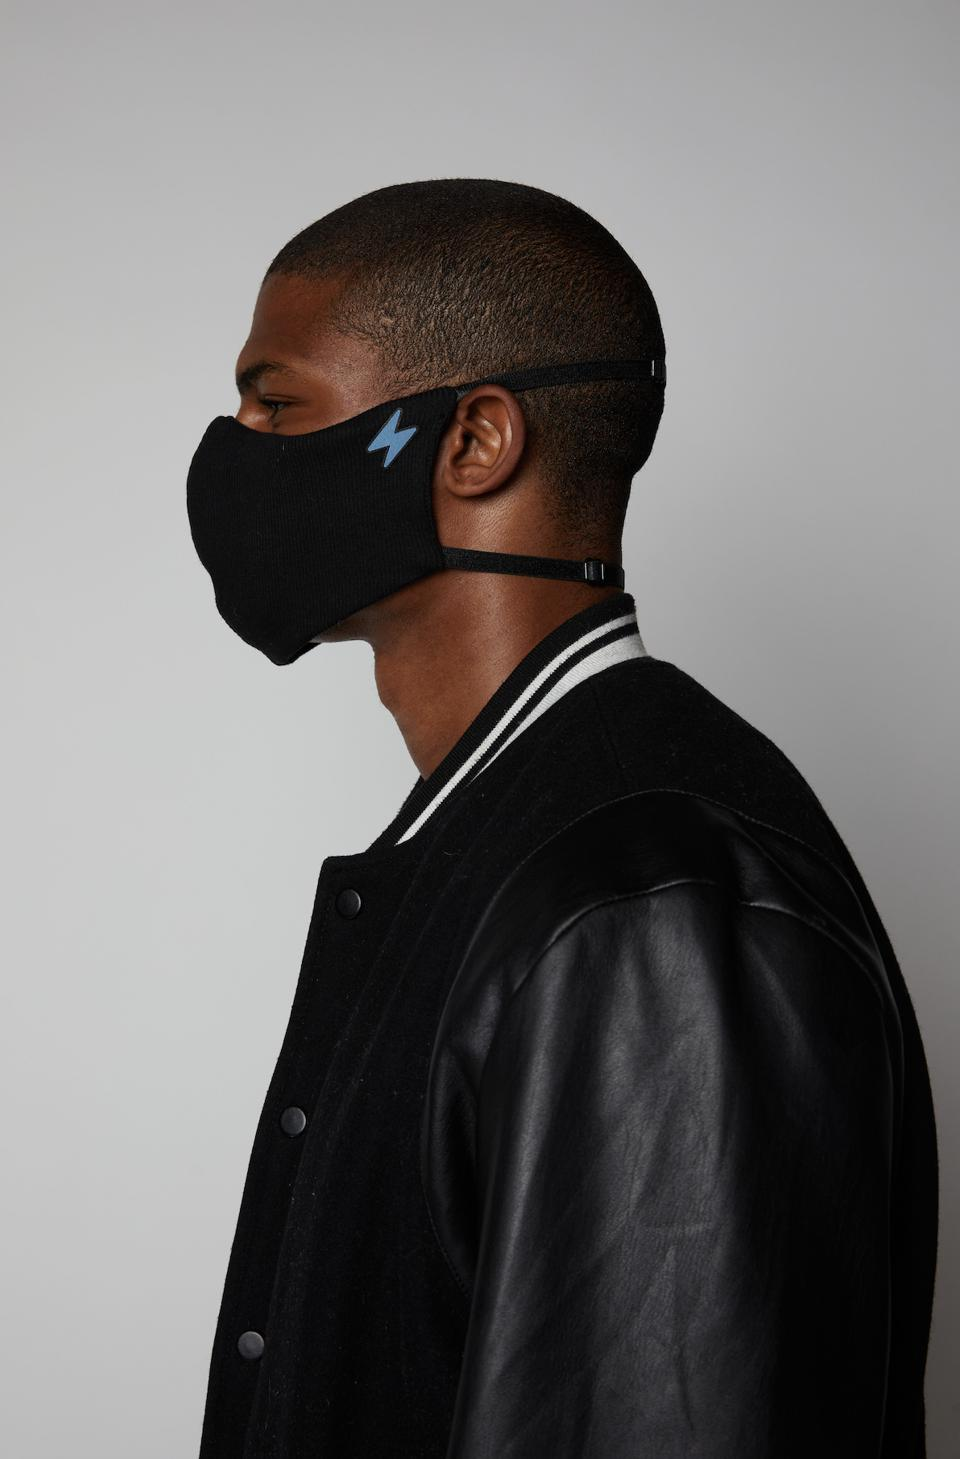 The Voyager Mask is designed and proudly Made In Freaking Los Angeles. Its three layers of fabric and customized fit offer optimized protection and coverage for everyday use. A portion of all sales will go to The Conscious Kid Foundation to help fight racism in schools.